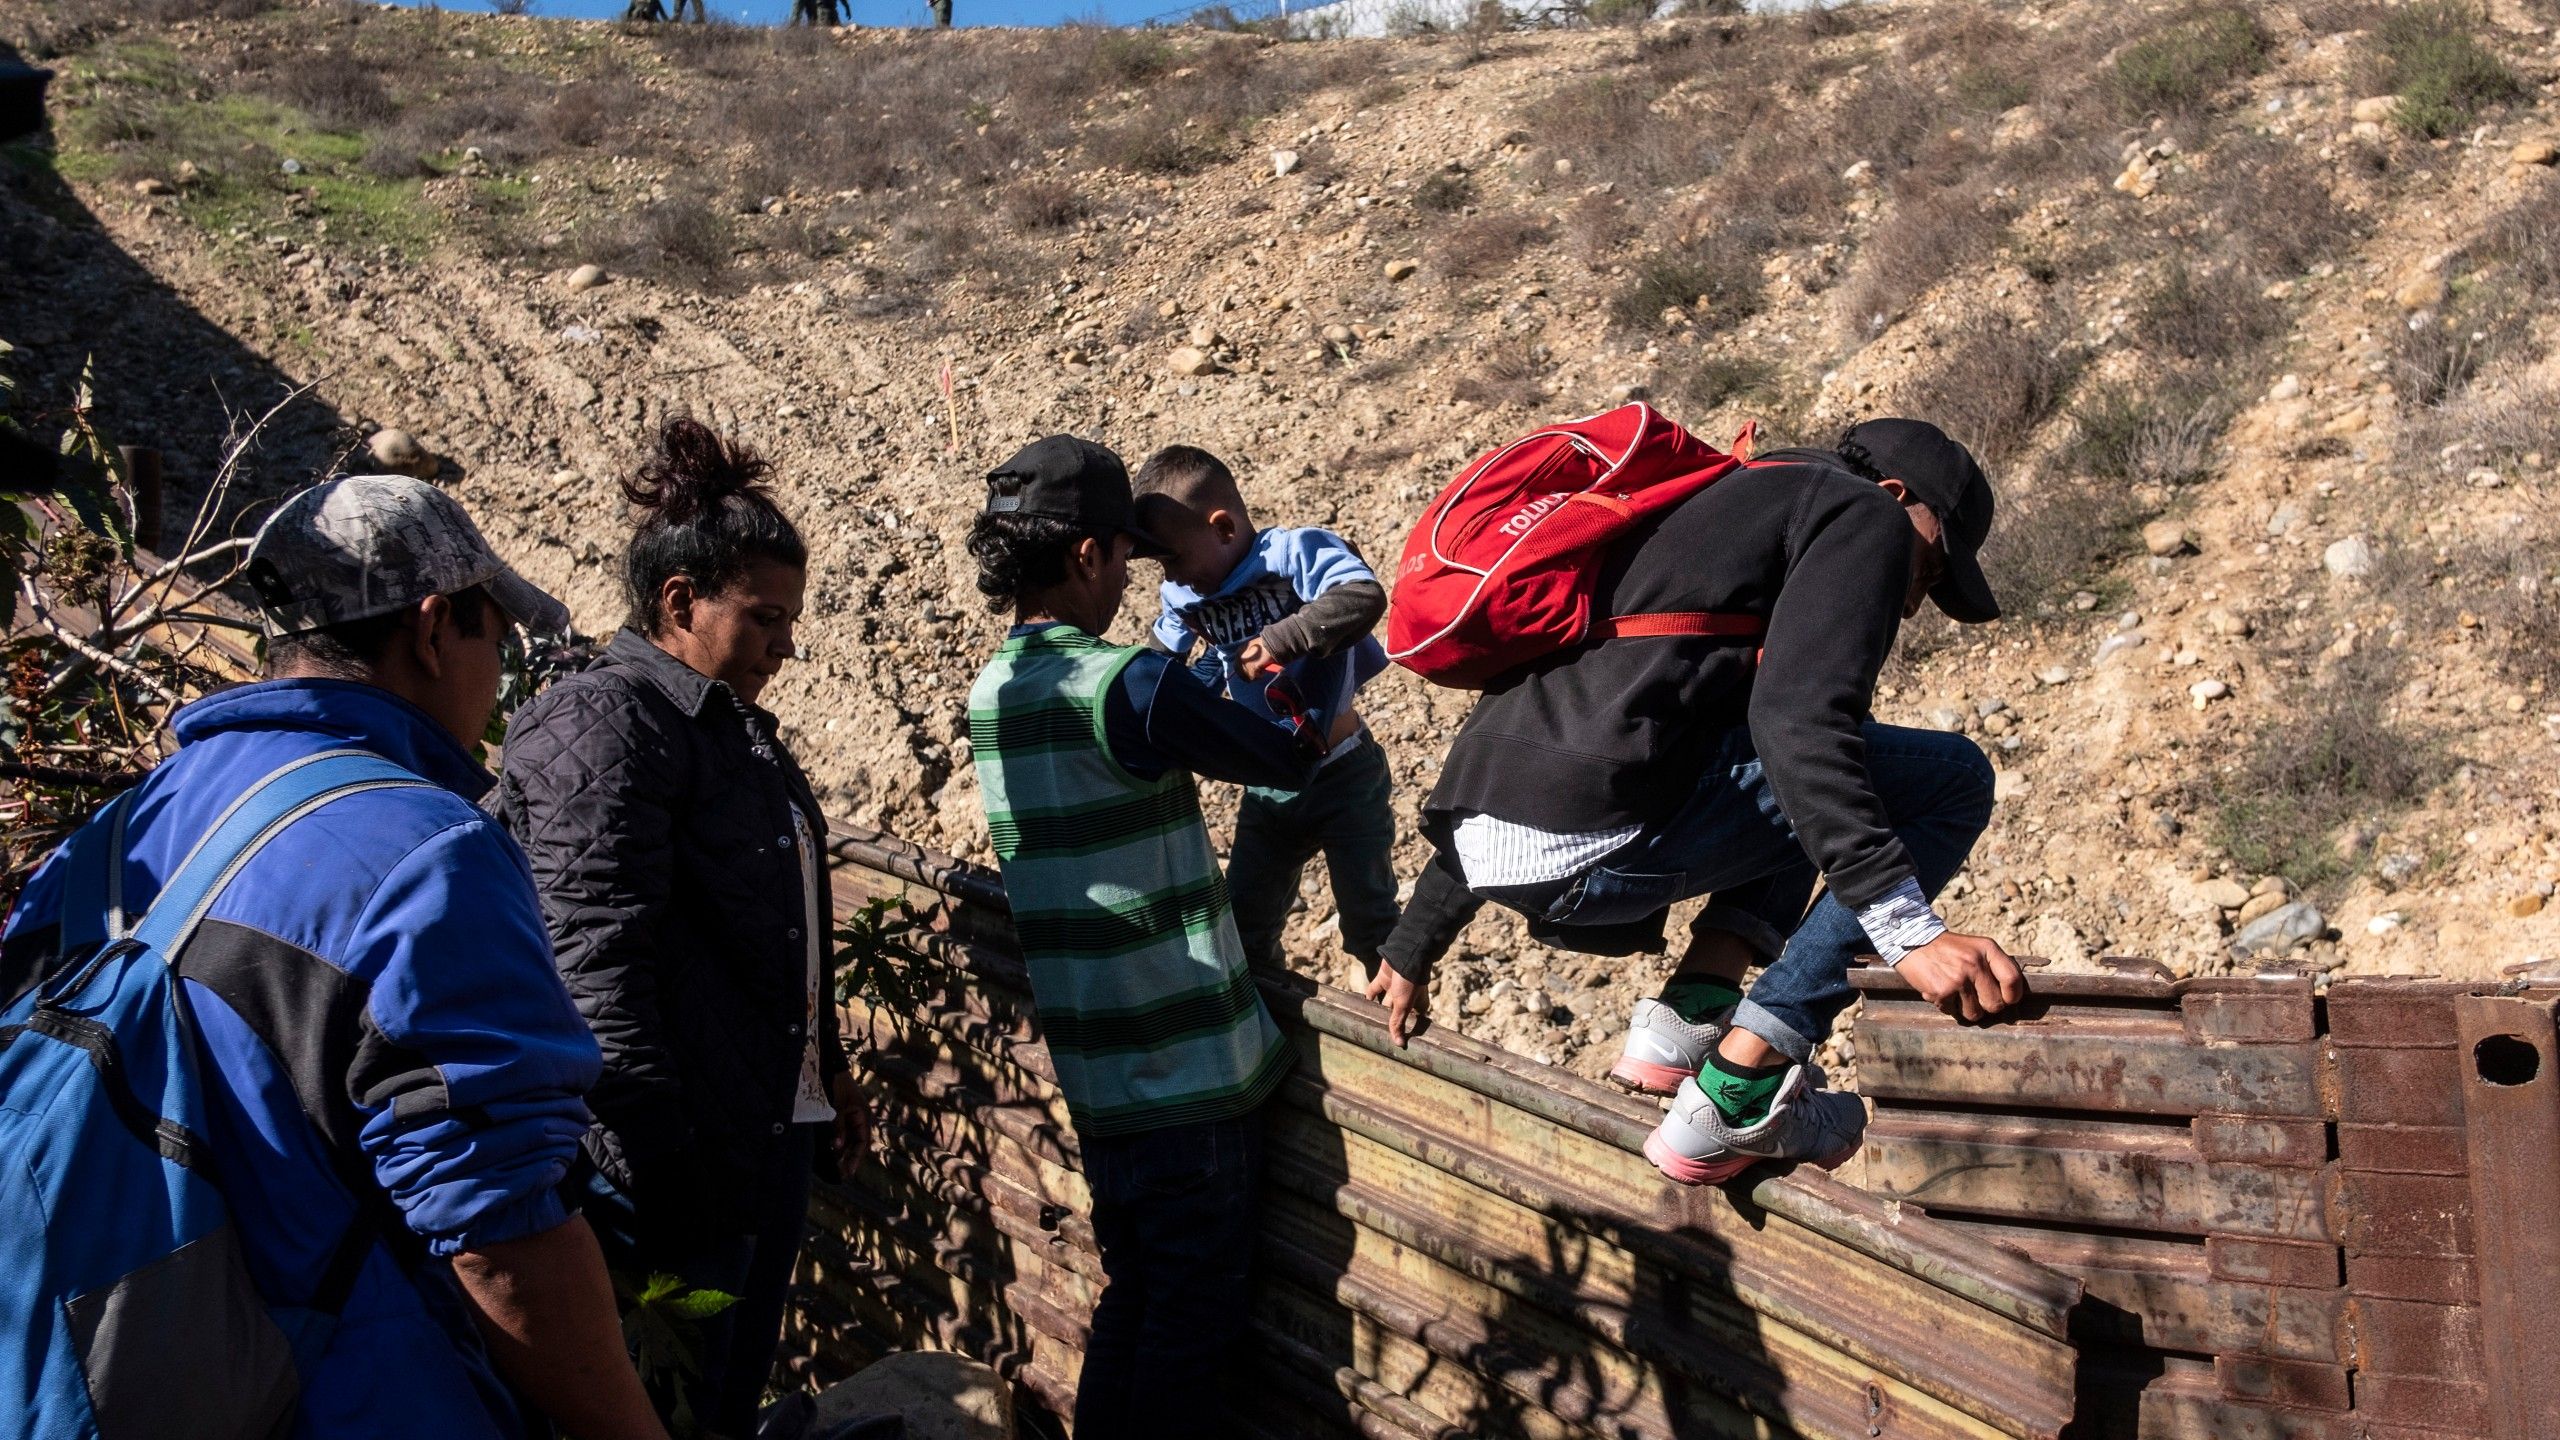 A group of Central American migrants -traveling in a caravan- cross the Mexico-US border fence to San Diego County, from Tijuana, on Dec. 16, 2018. (Credit: Guillermo Arias/AFP/Getty Images)